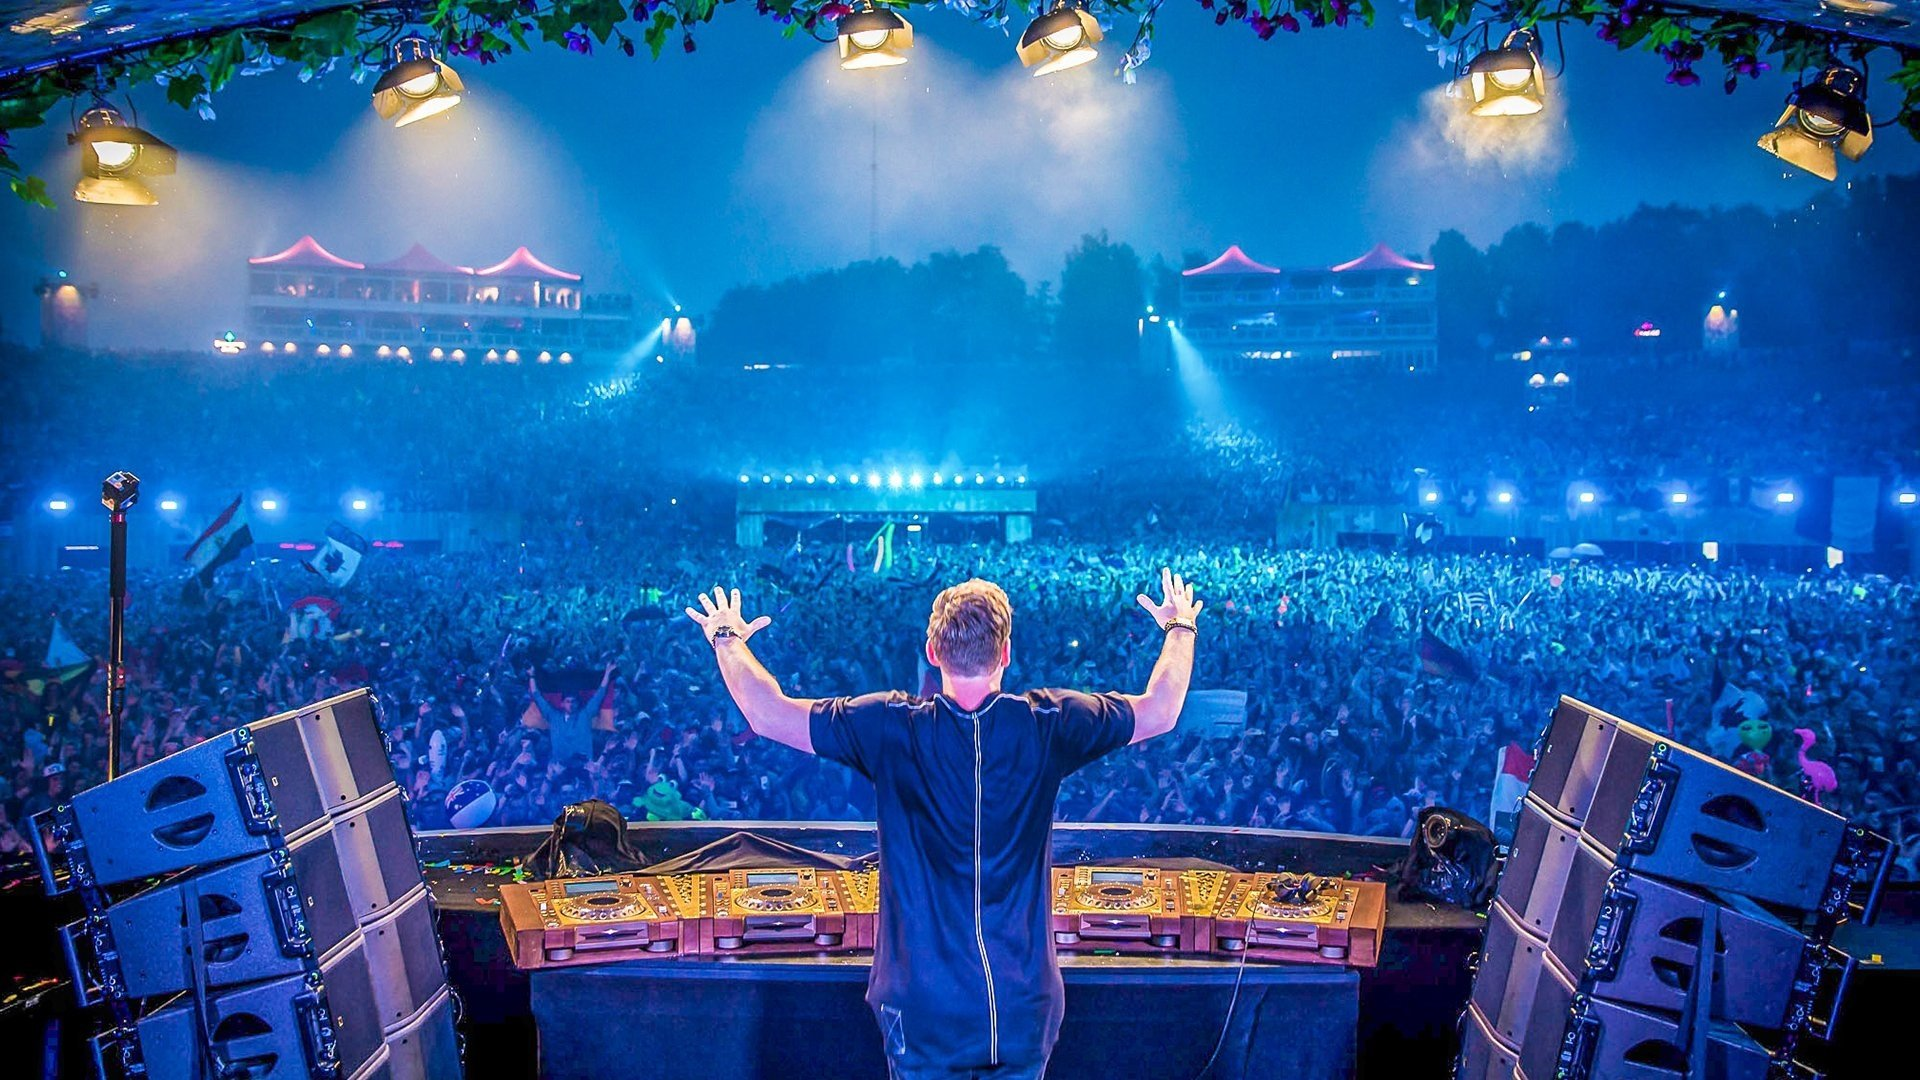 Music - Hardwell  Tomorrowland Festival Robbert van de Corput DJ Music Wallpaper